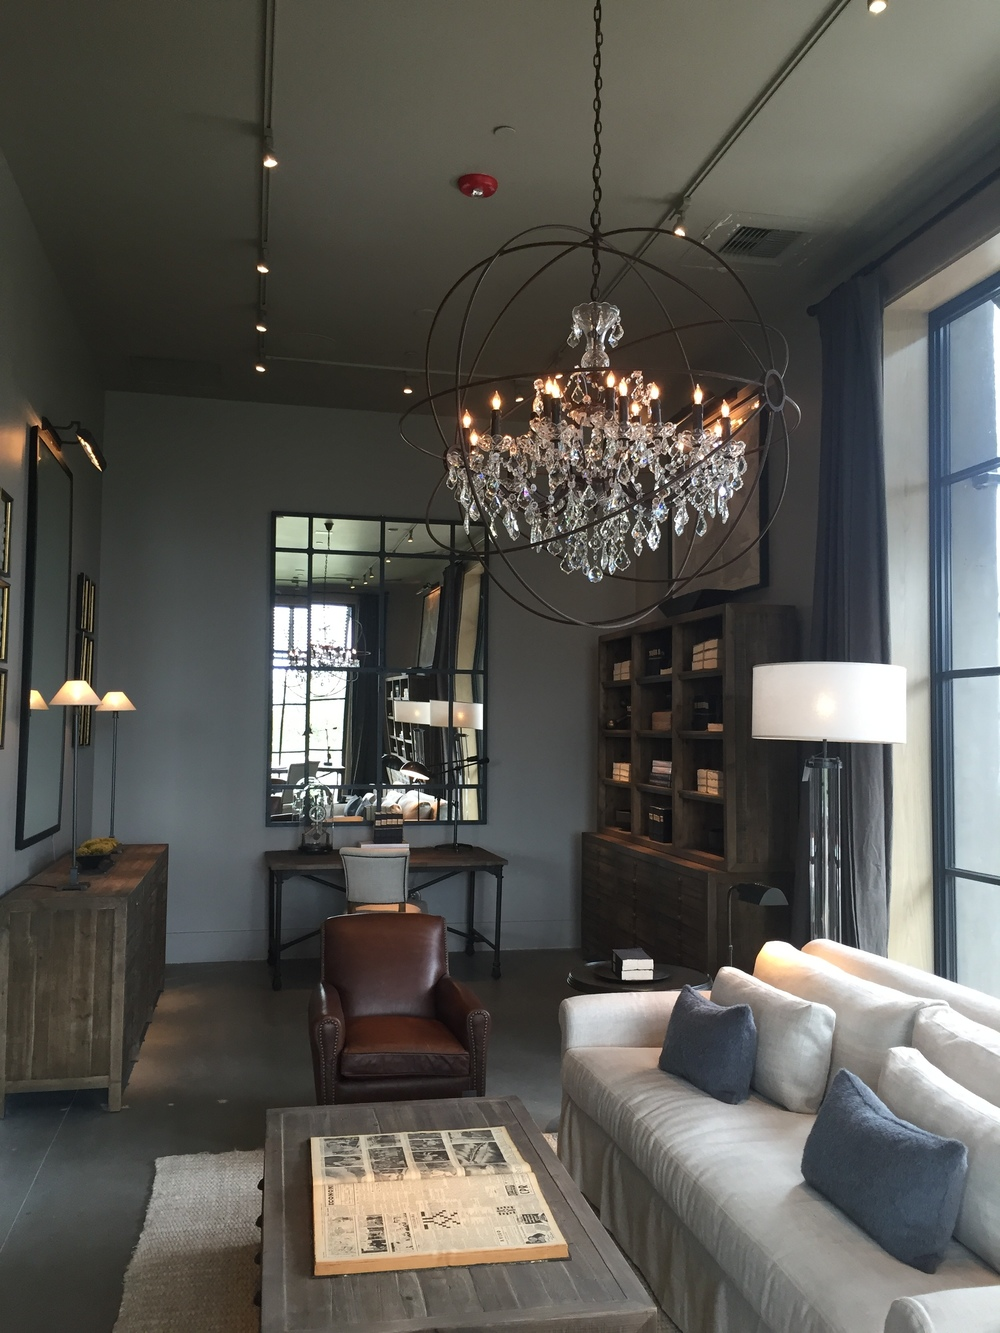 Restoration Hardware at Town Center Leawood, KS